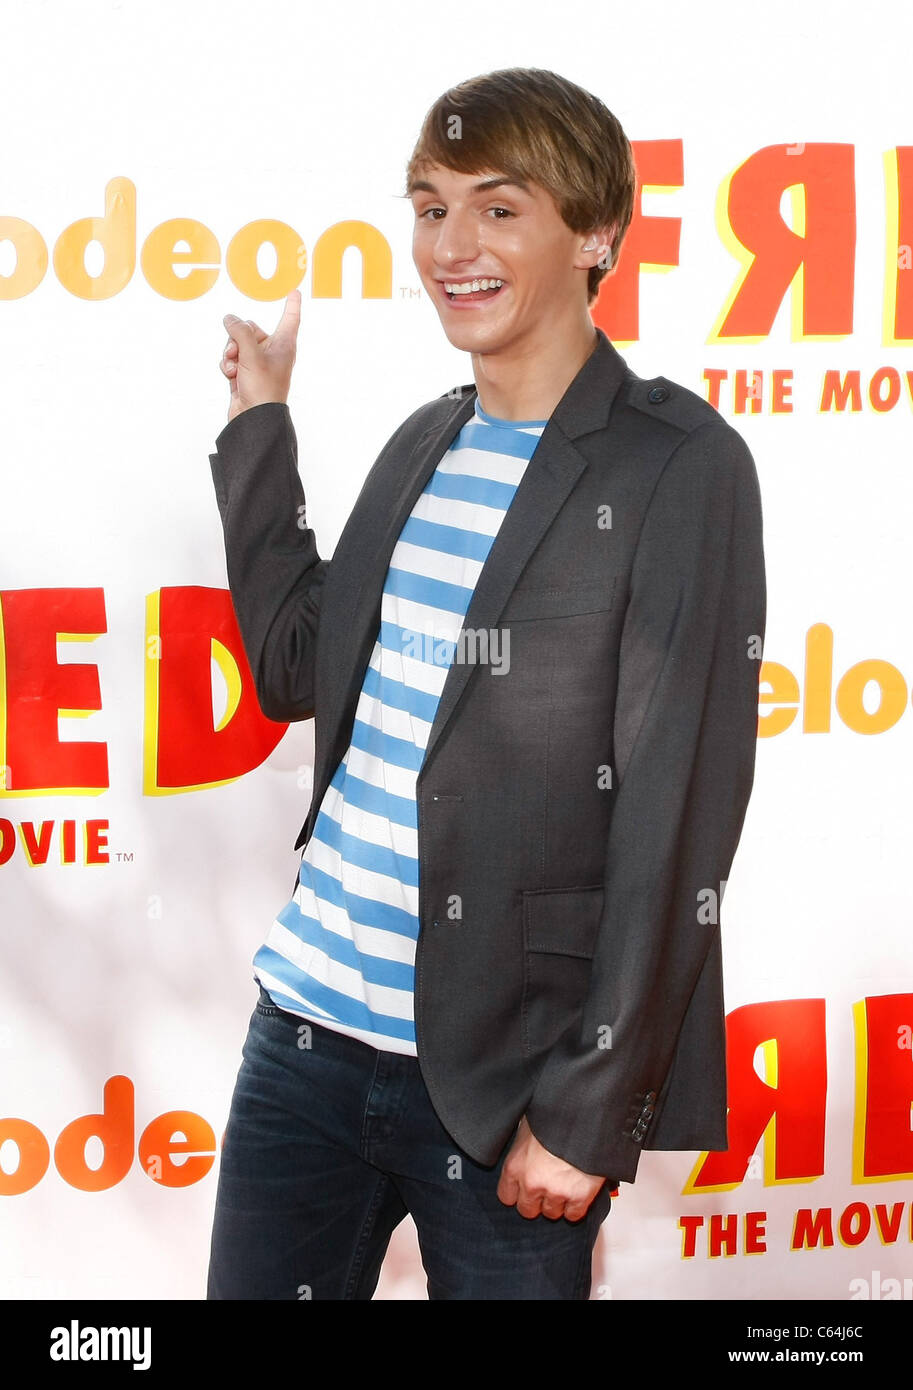 Lucas Cruikshank at arrivals for FRED: THE MOVIE Premiere, Paramount Theatre, Los Angeles, CA September 11, 2010. - Stock Image